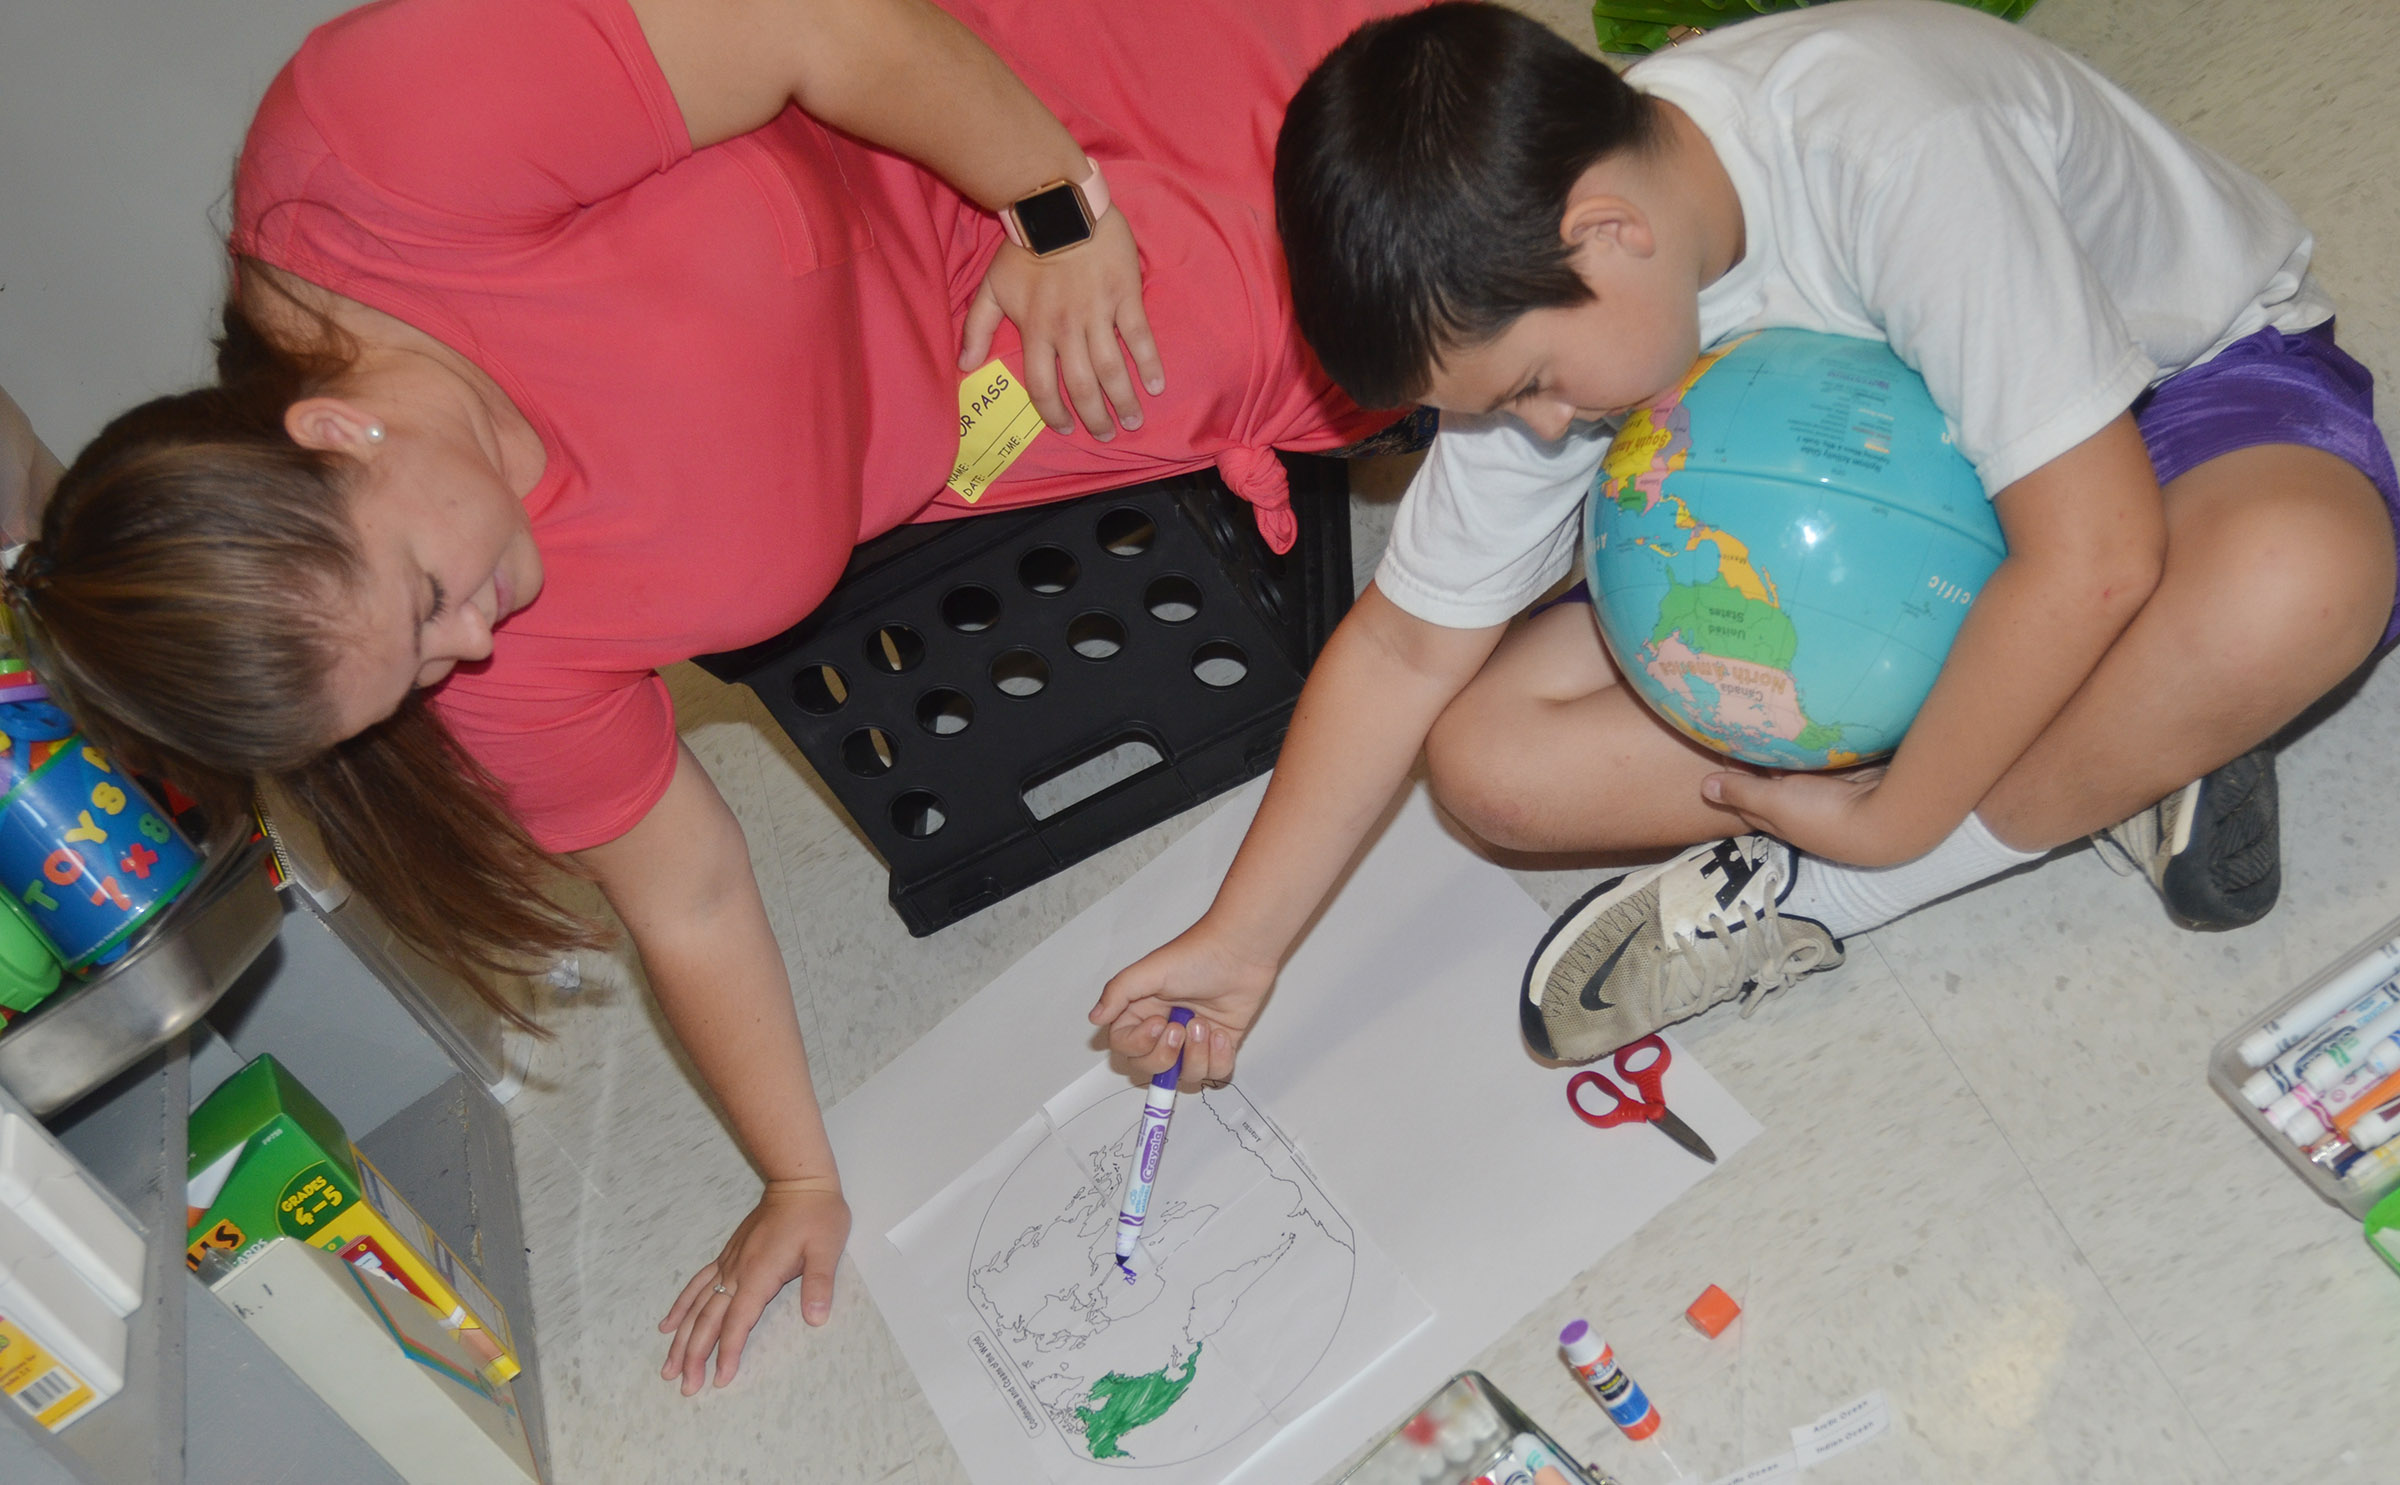 Campbellsville University education student Jordan Bray helps third-grader Damien Clark label the continents.